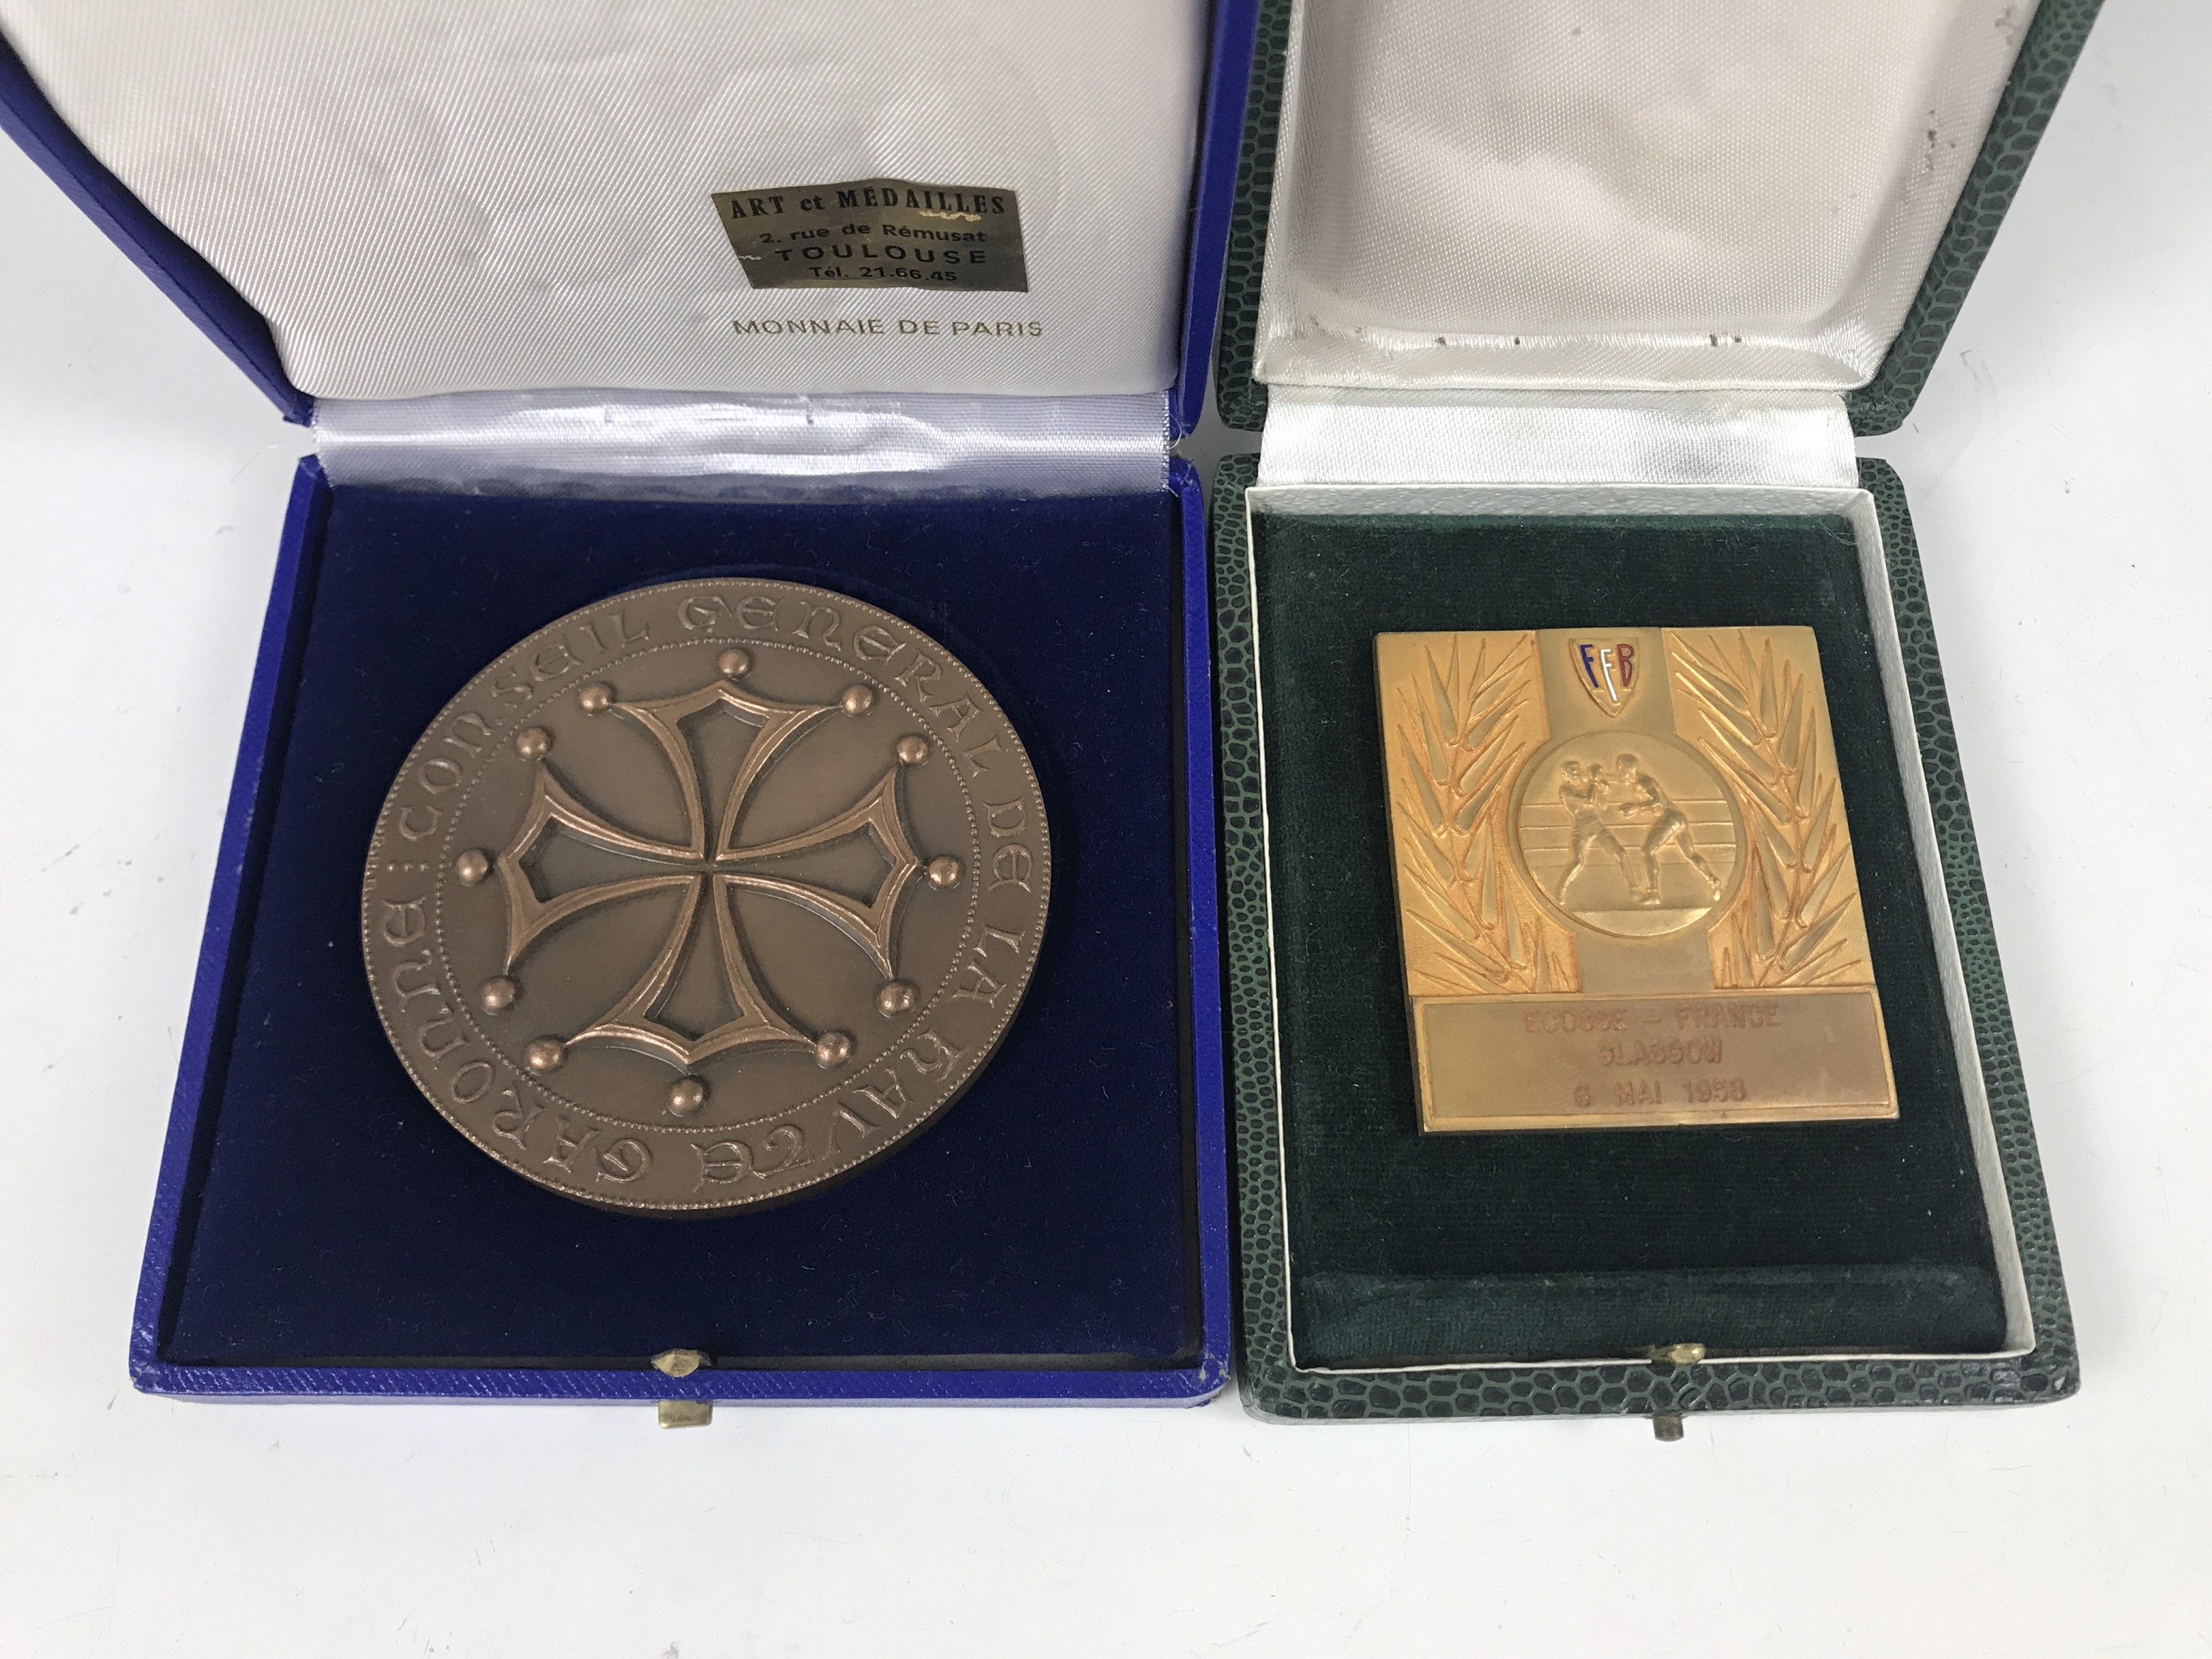 Lot 23 - A large reproduction bronze Conseil General de la Havre Garonne medal dated 1978 together with a